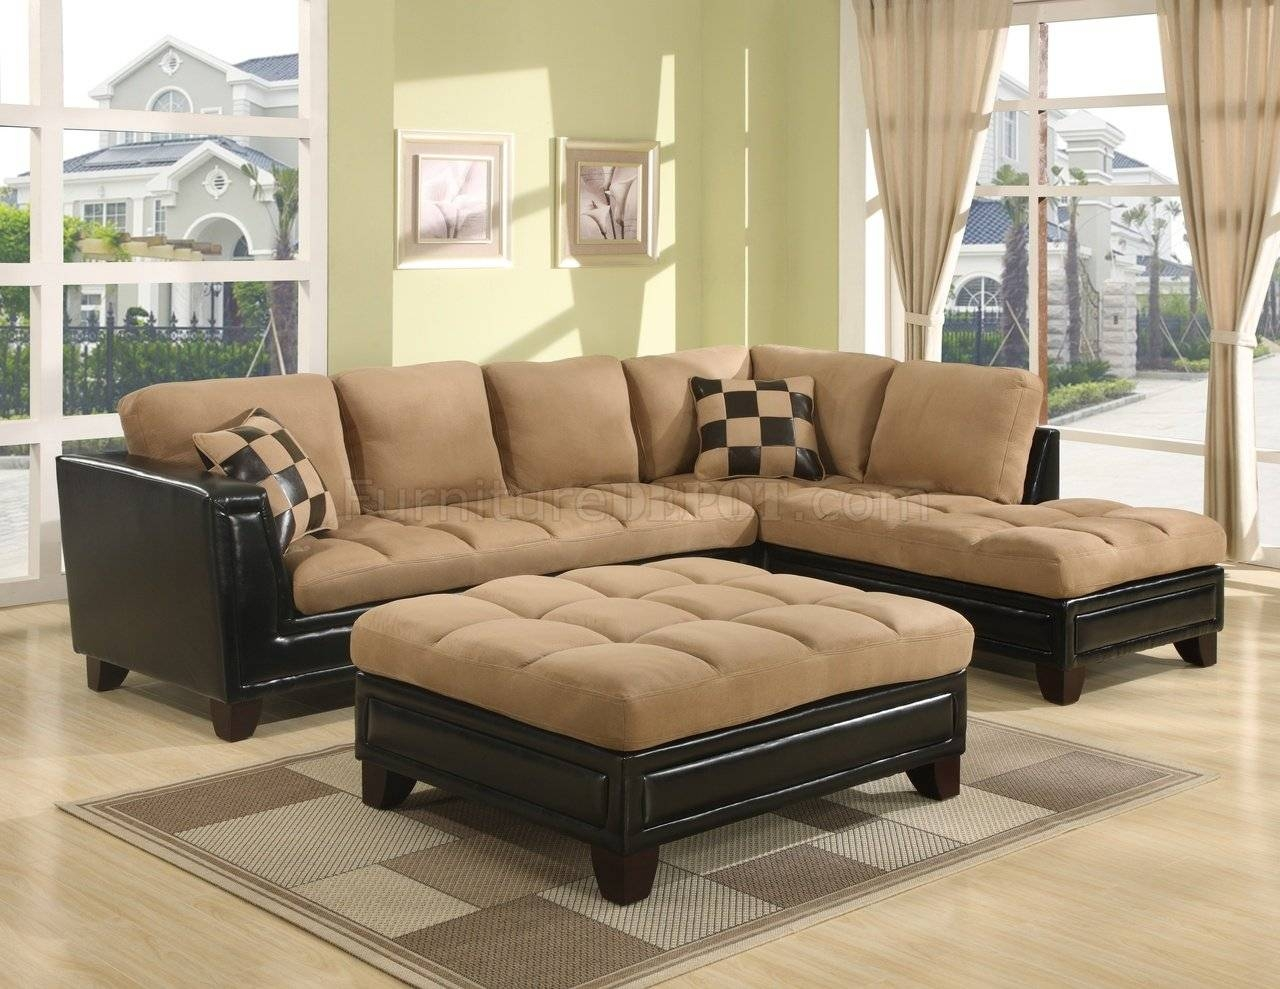 Beige Suede Two-Tone Modern Sectional Sofa W/bycast Base throughout Leather and Suede Sectional Sofa (Image 3 of 25)